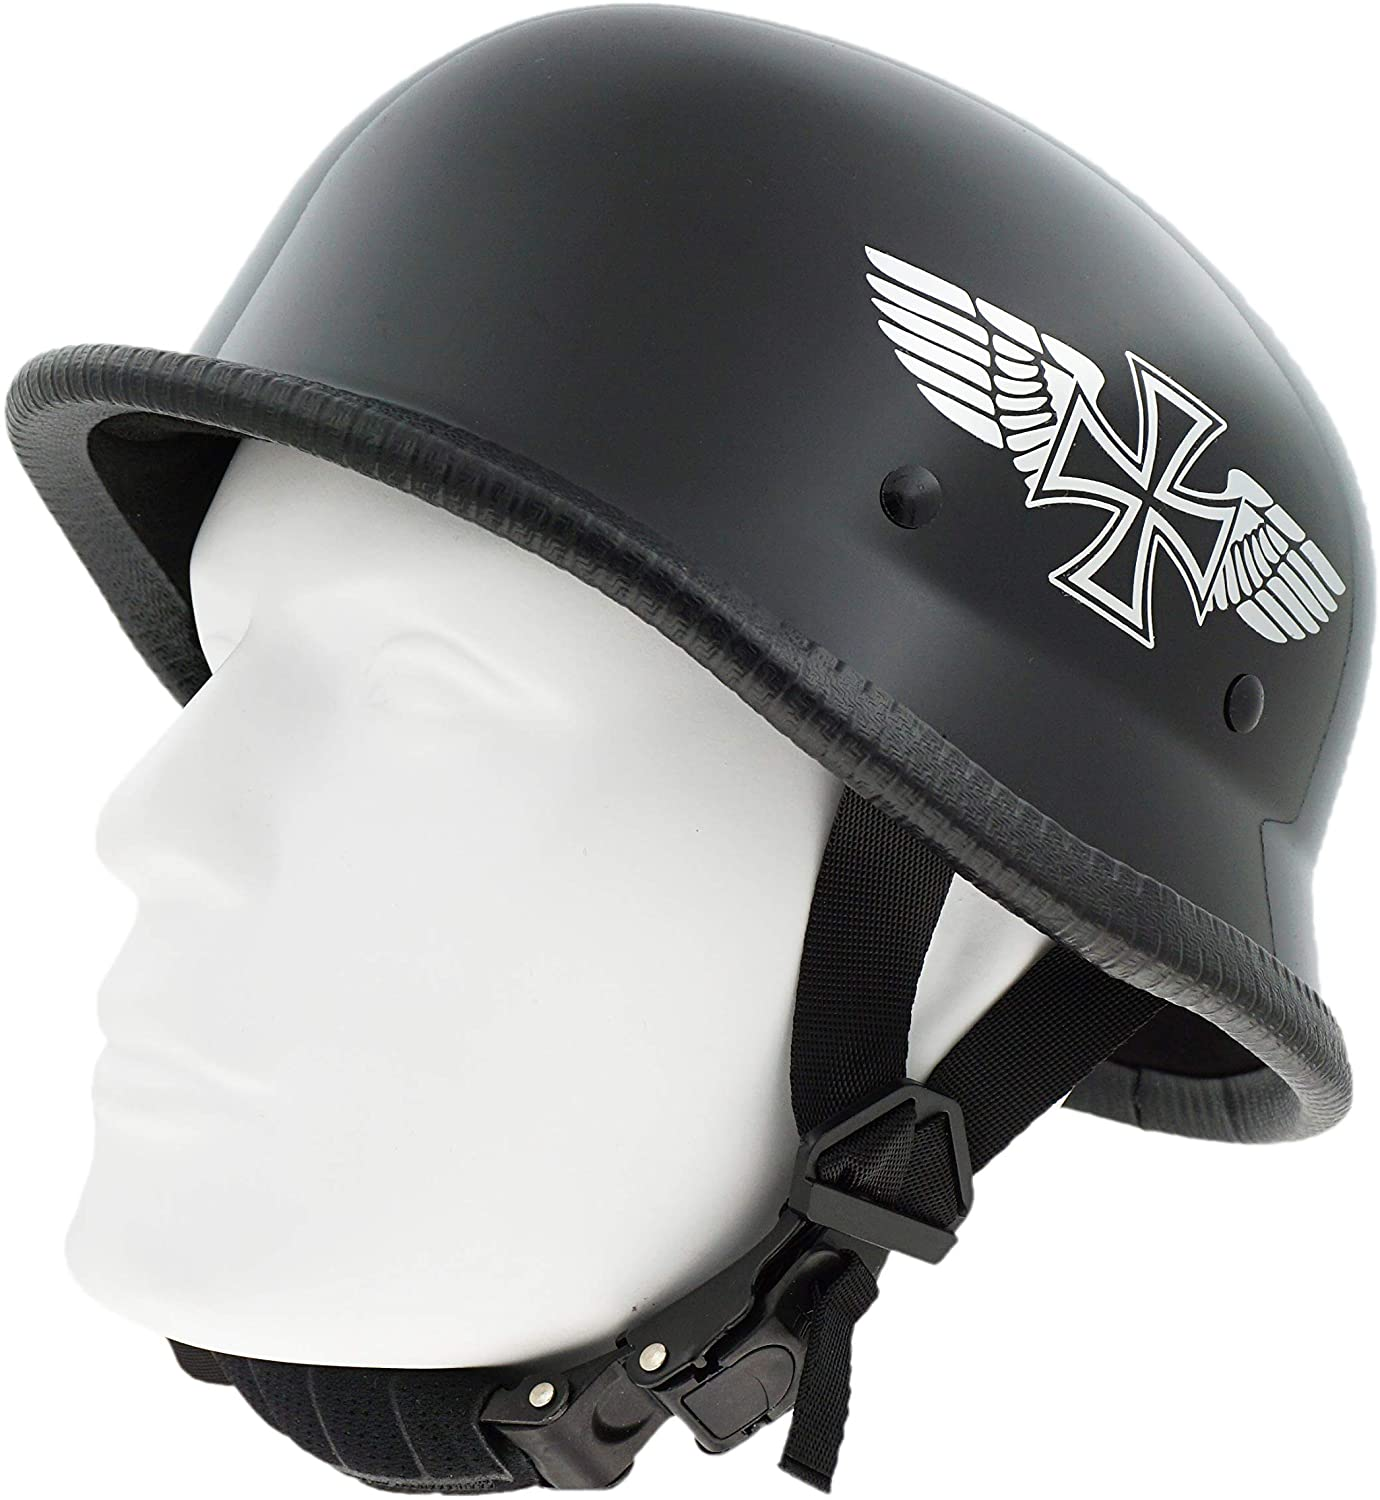 Hot Rides Classic Costume Carnival Skate Scooter Helmet Novelty German Gloss Black with SilverFlying Cross OSFM